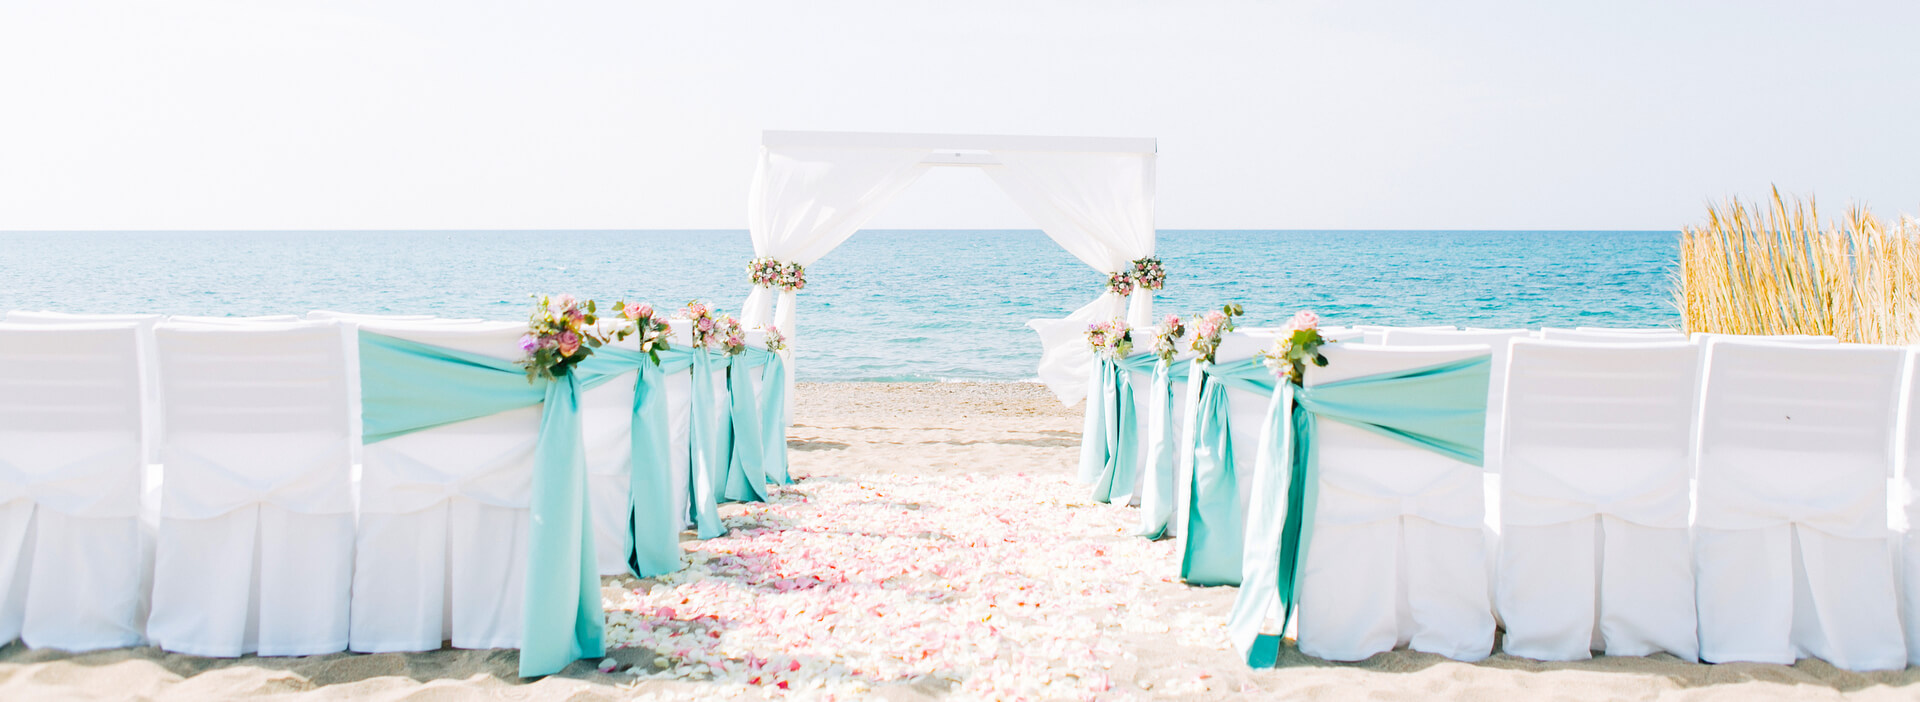 The Bridal Consultant, planning Dream Weddings Abroad